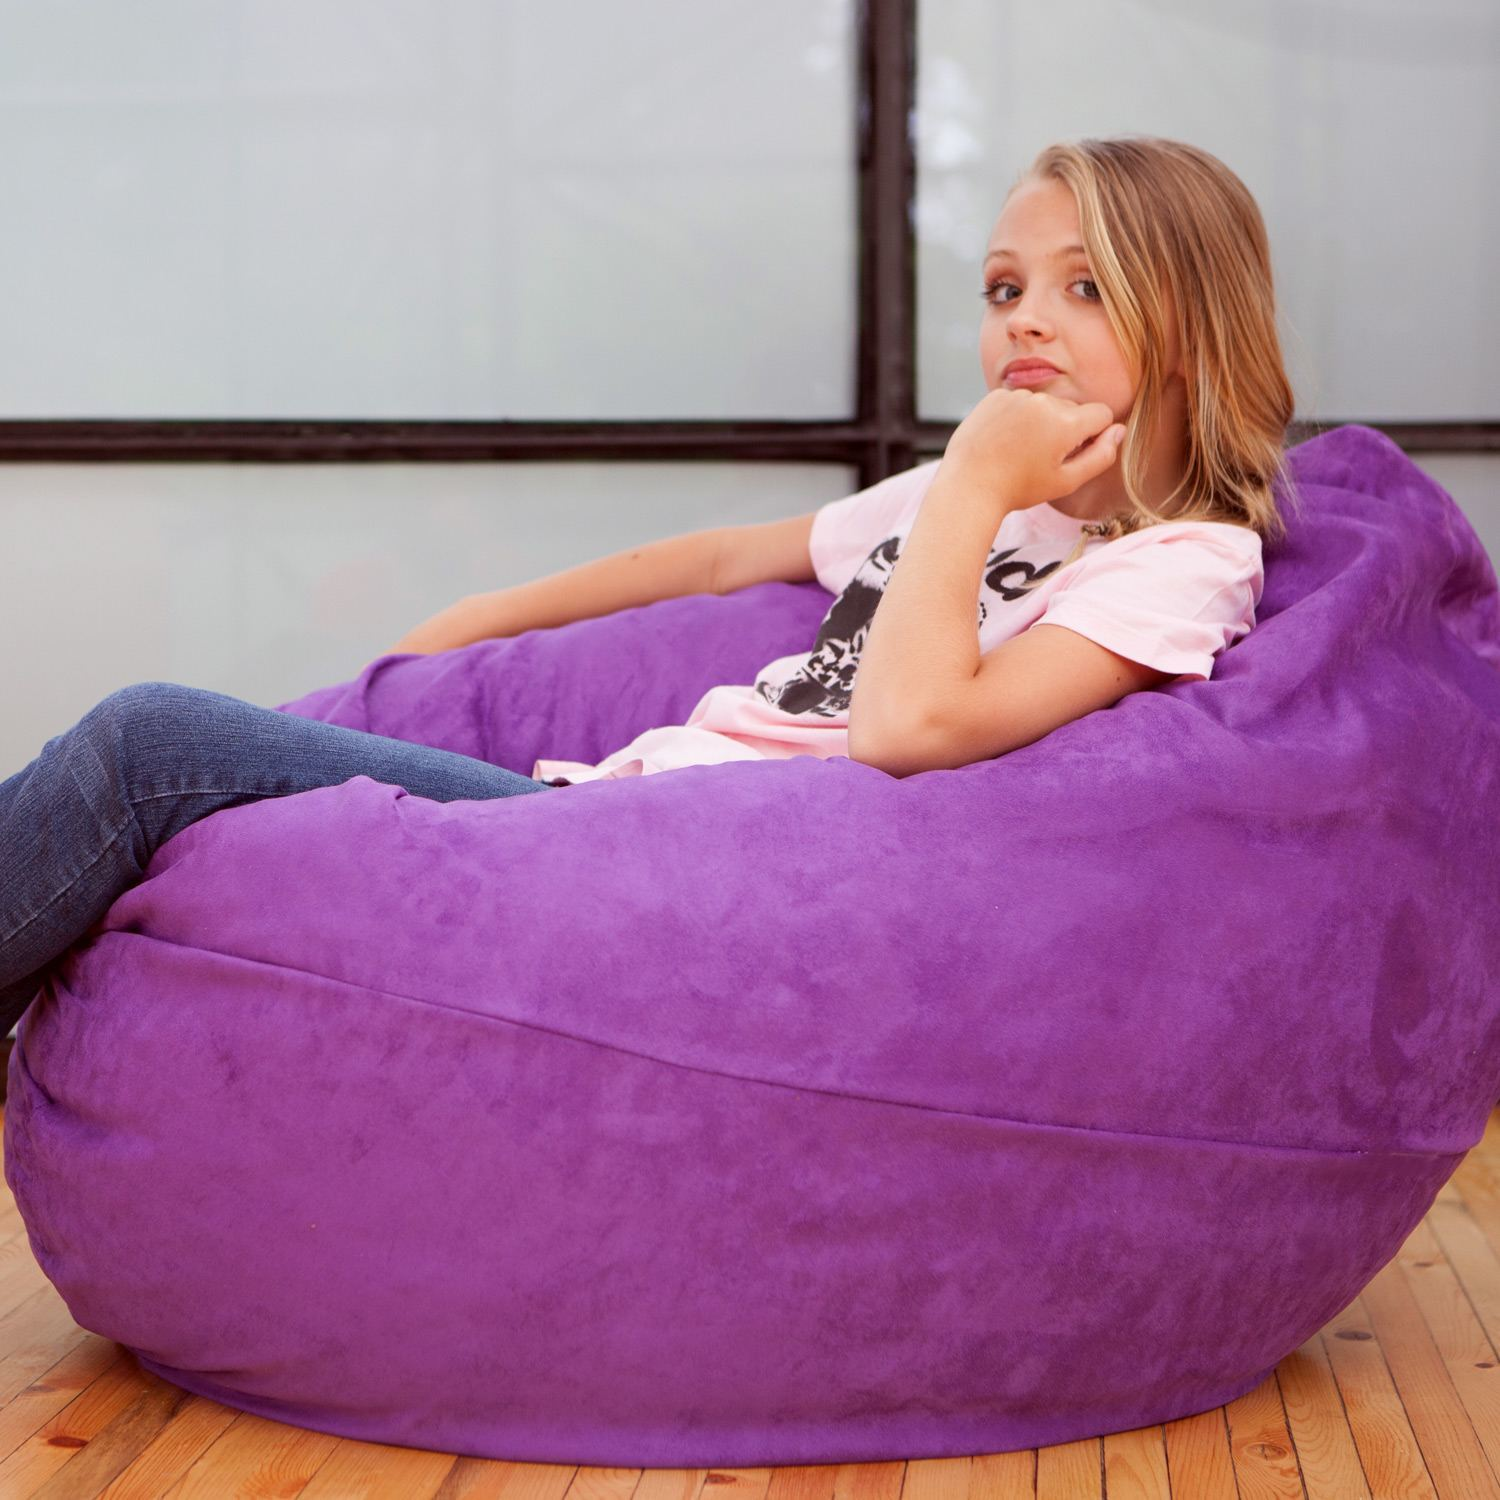 Jaxx Bean Bag Chairs Rattan Dining Chair Comfy If Stood On End And Squished Toward The 4 Foot Cocoon Will Become More Of A Pod That Enfold Child In Lovely Embrace